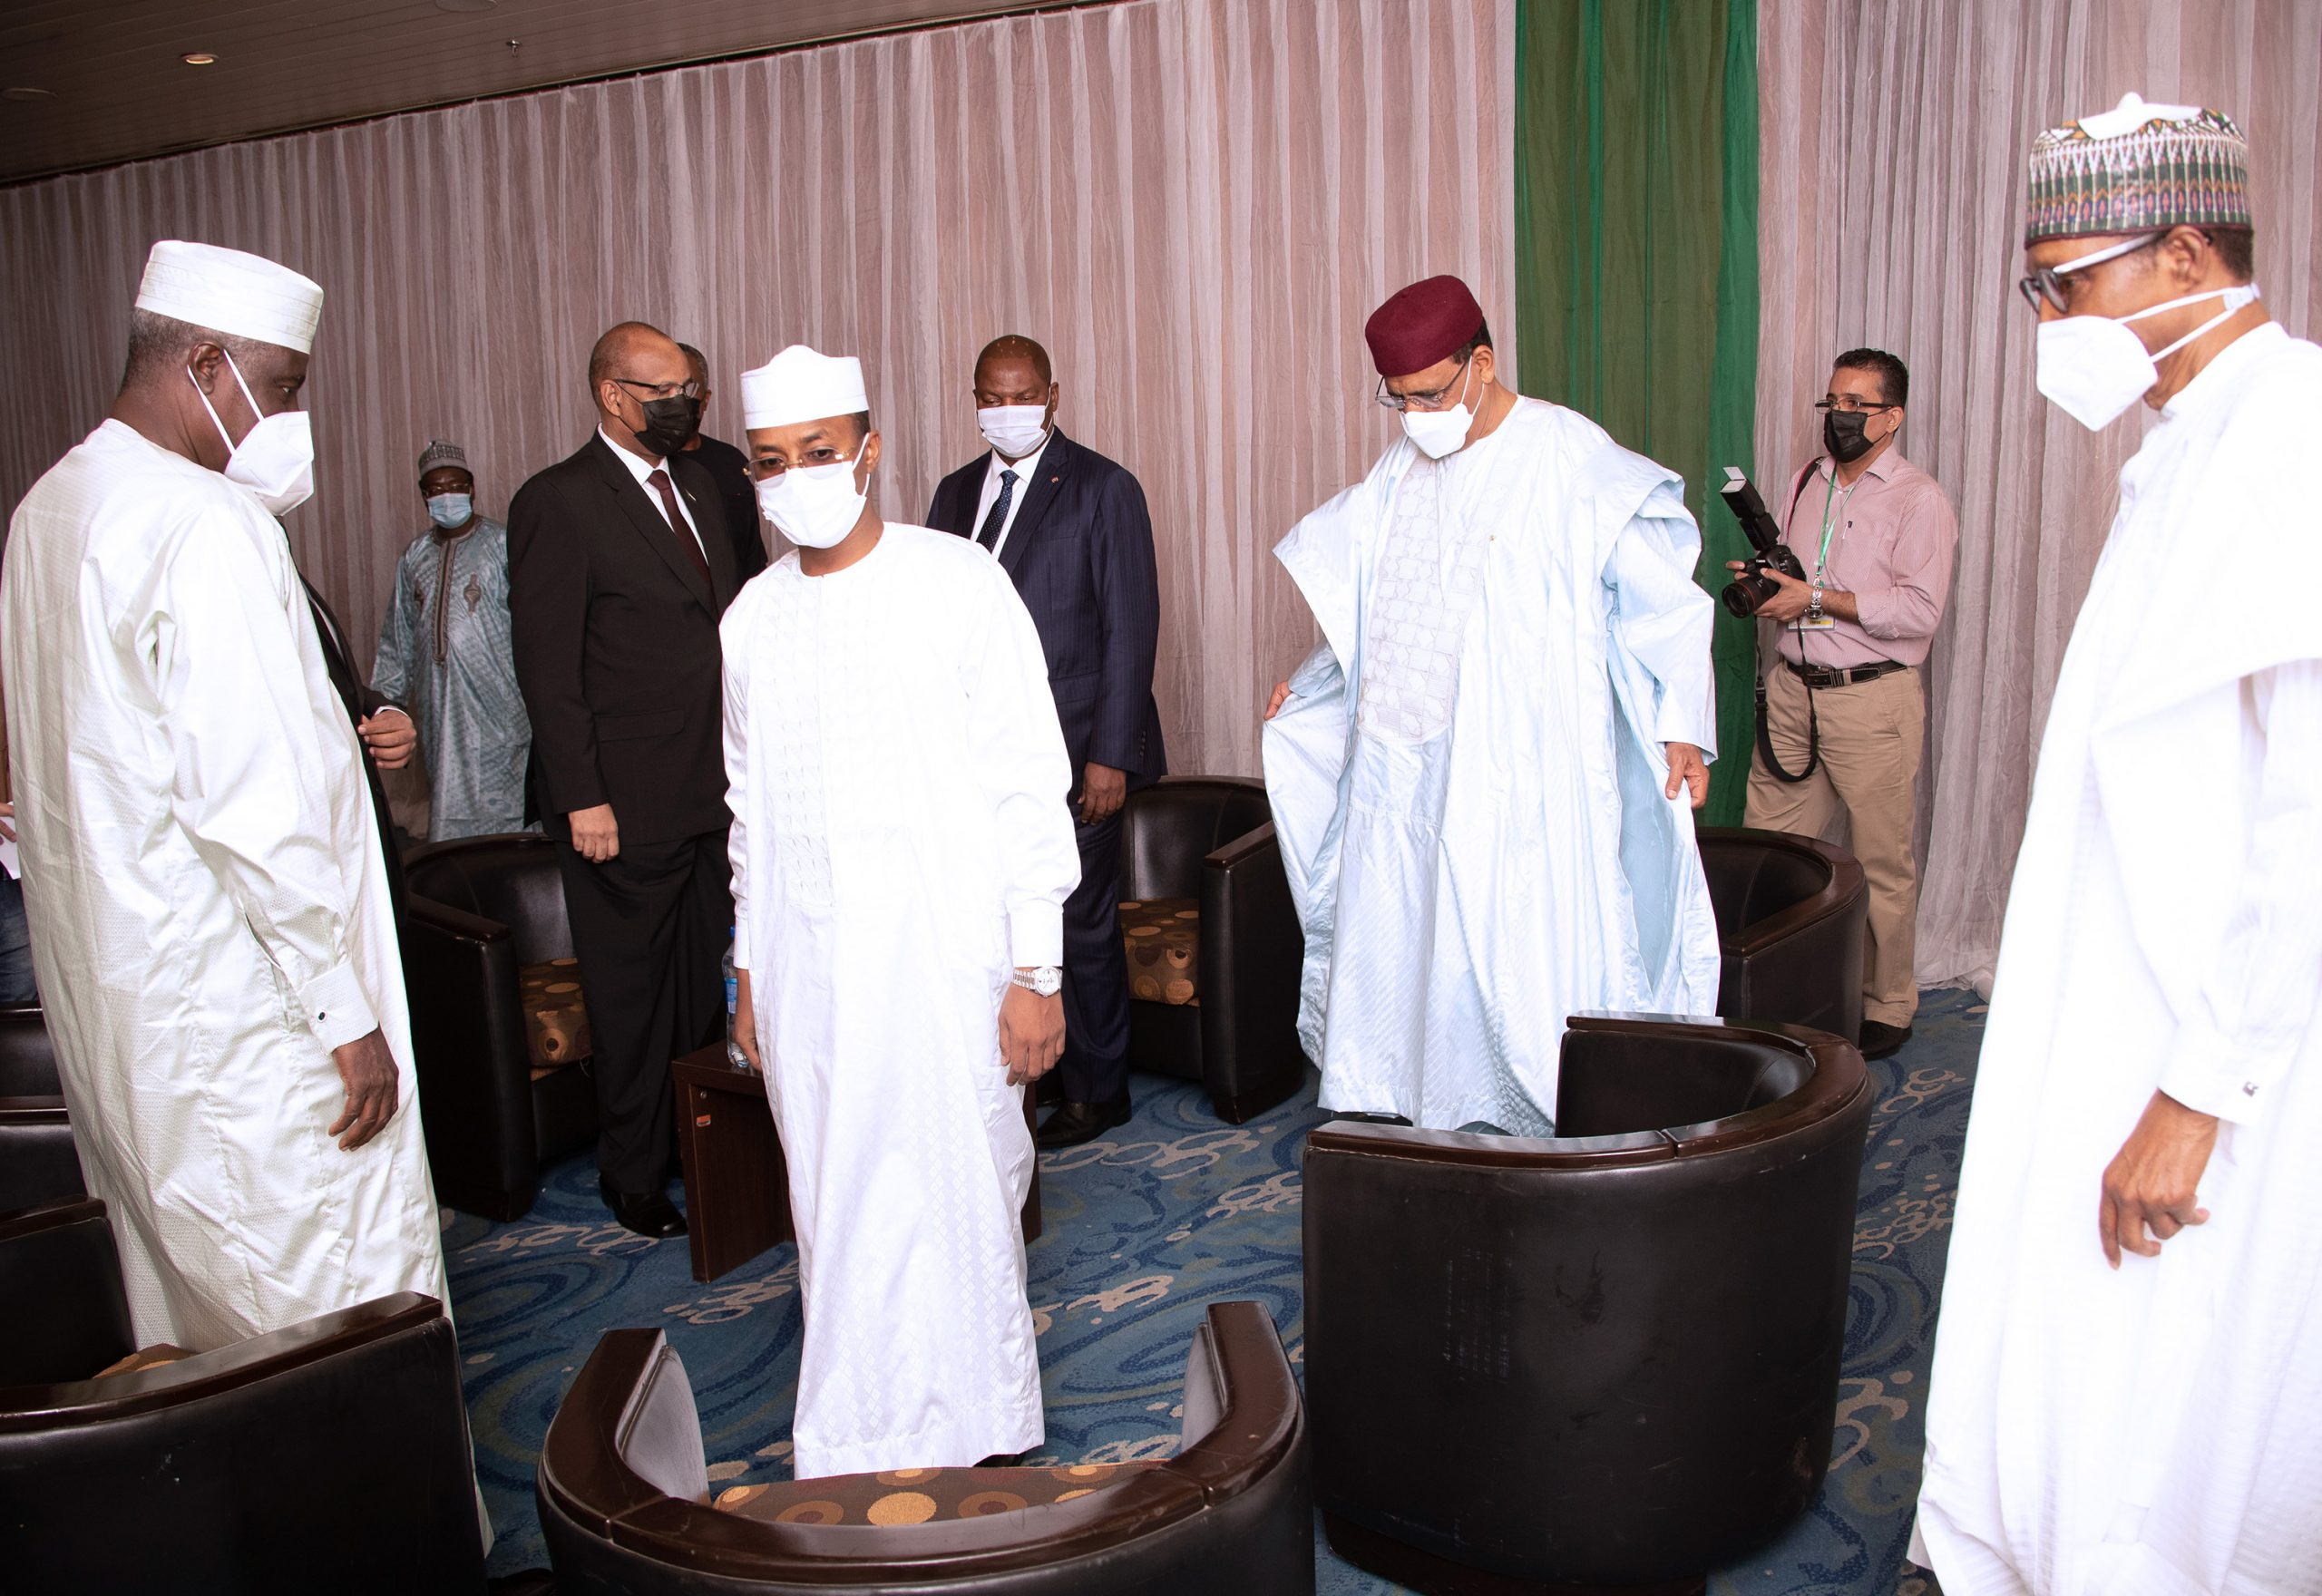 President Muhammadu Buhari receives the President of Chad Transitional Council, General Mahamat Idris Deby. With them are the President of Niger Mohamed Bazoum, President of the Central African Republic, H.E Prof Faustine Archange Touadera and others during the Extraordinary Summit of the Lake Chad Basin Commission held at the Transcorp Hilton Abuja. PHOTO; SUNDAY AGHAEZE. MAY 25TH 2021